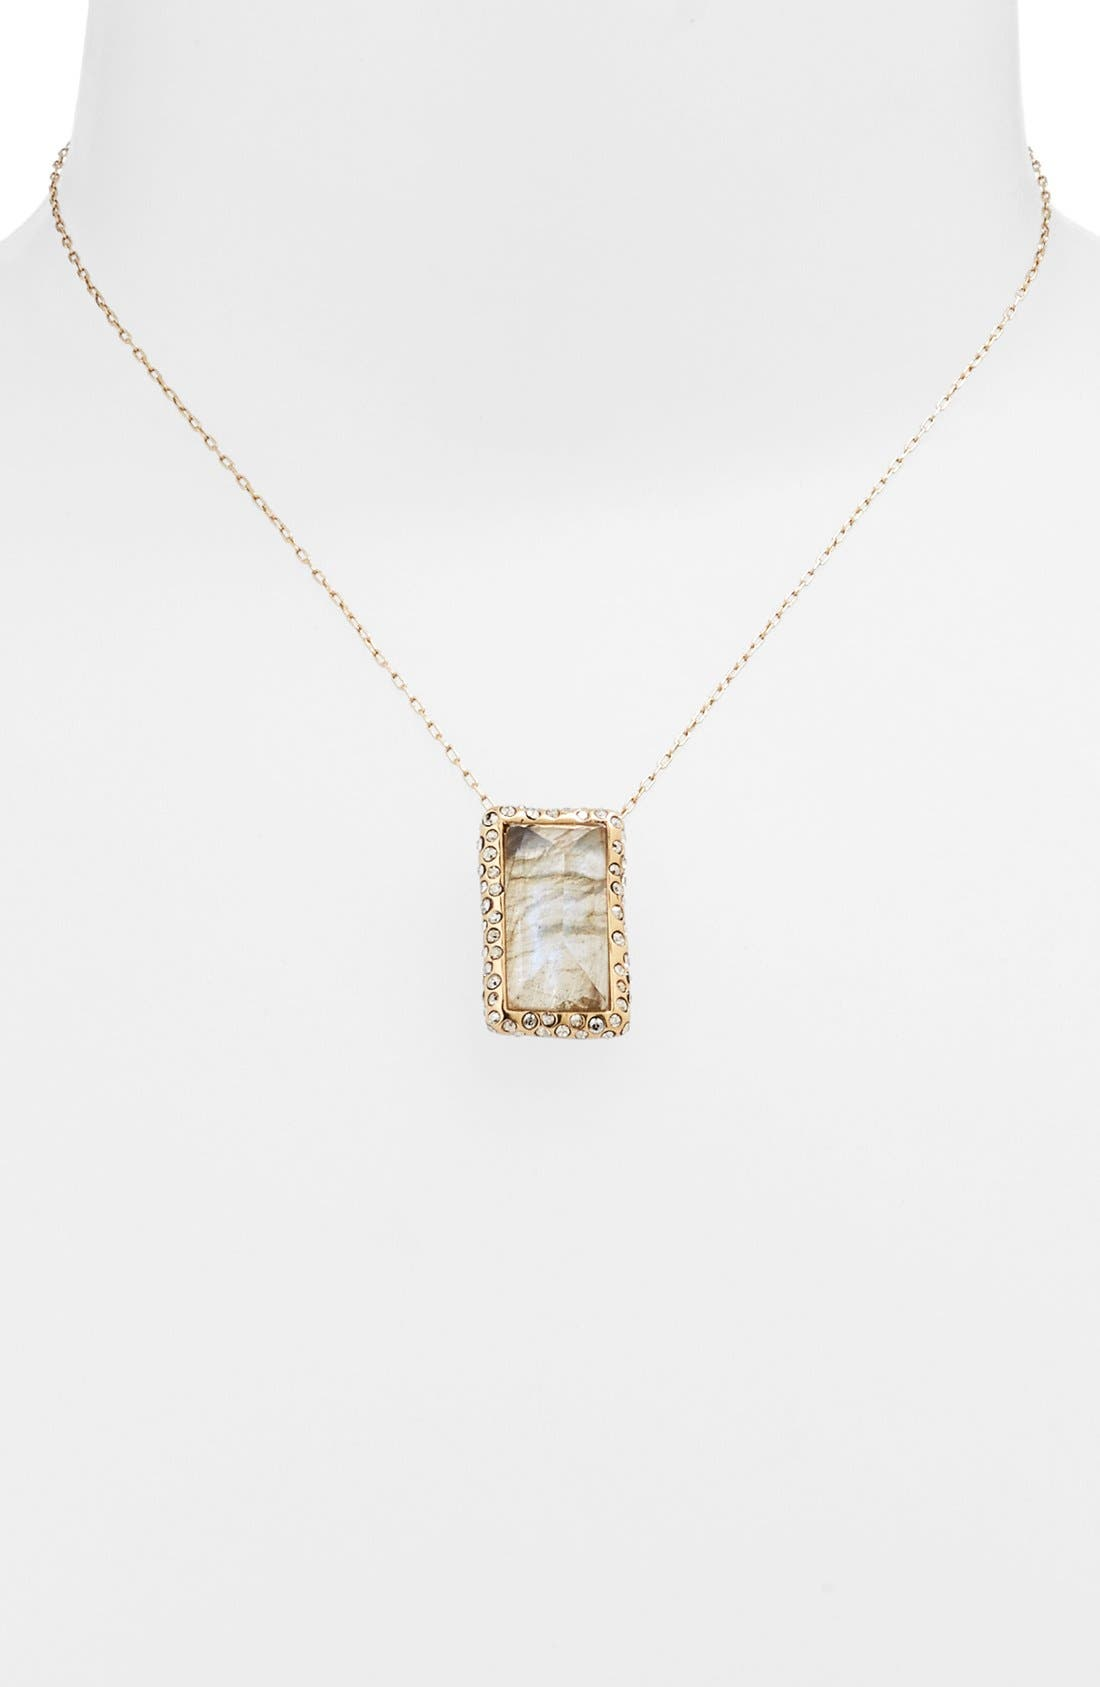 Alternate Image 1 Selected - Alexis Bittar 'Miss Havisham' Pendant Necklace